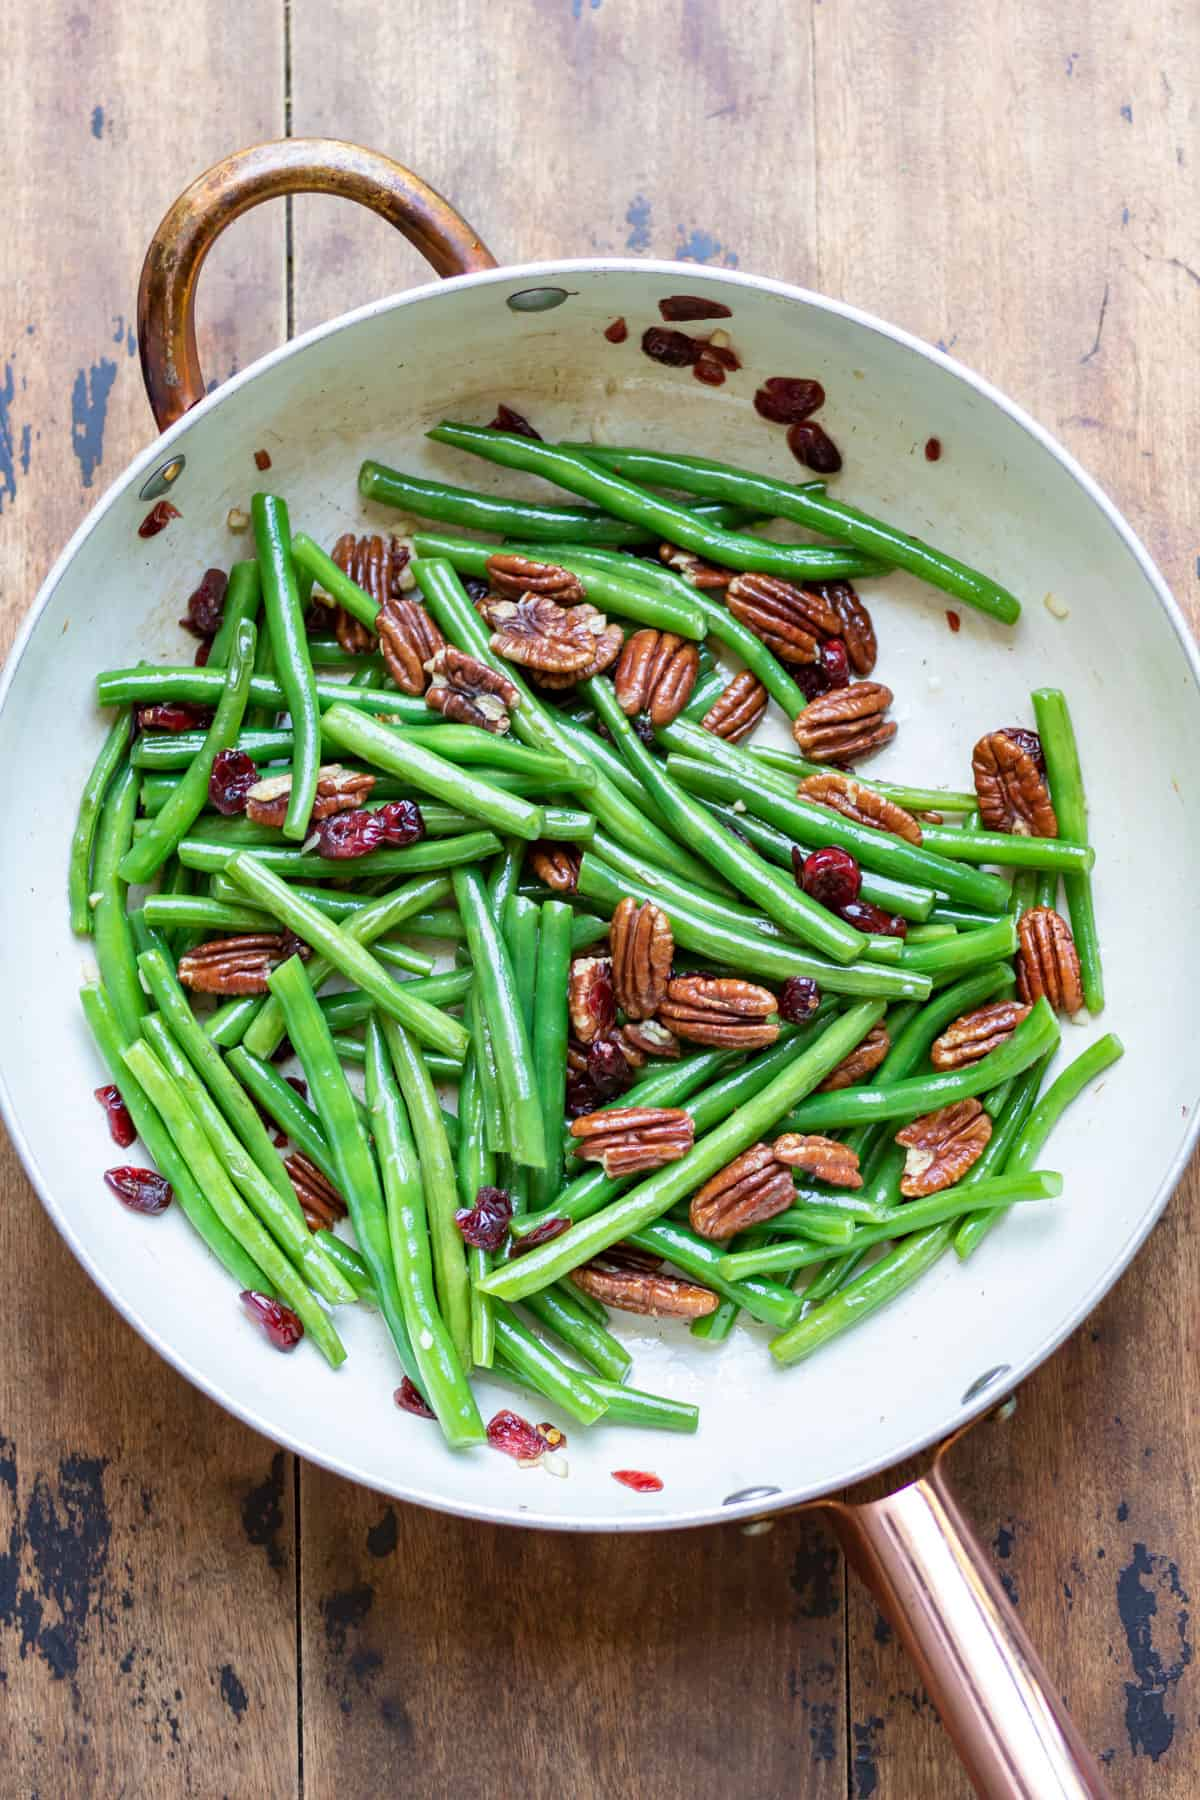 Finished sauteed green beans.